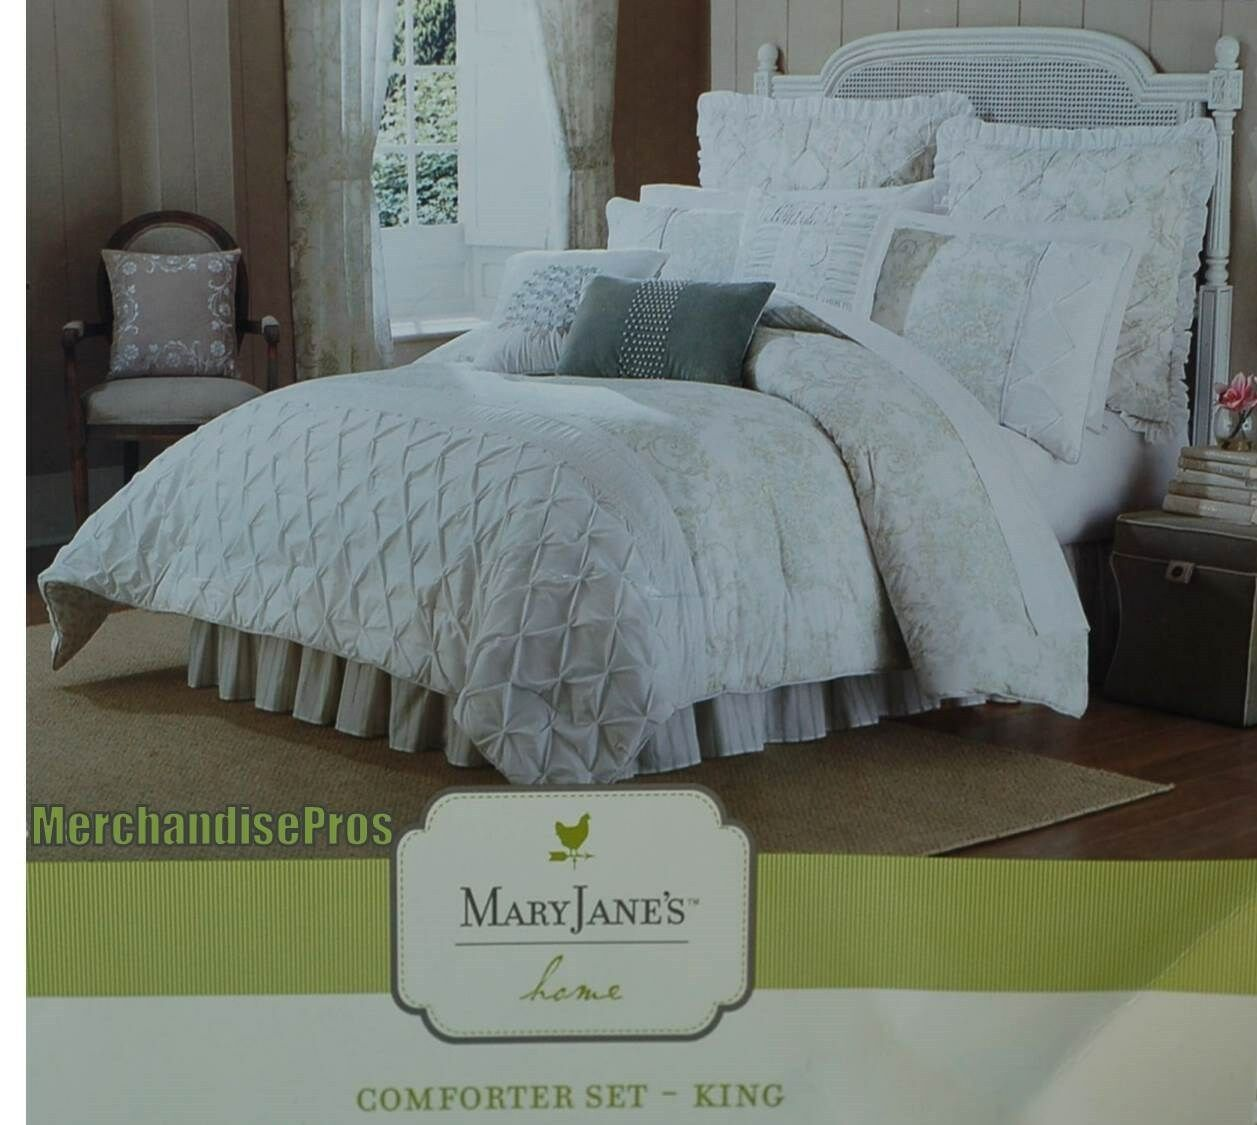 4 PC MARY JANE'S HOME FLORAL COMFORTER SET KING 108x96   400 MSRP  NEW